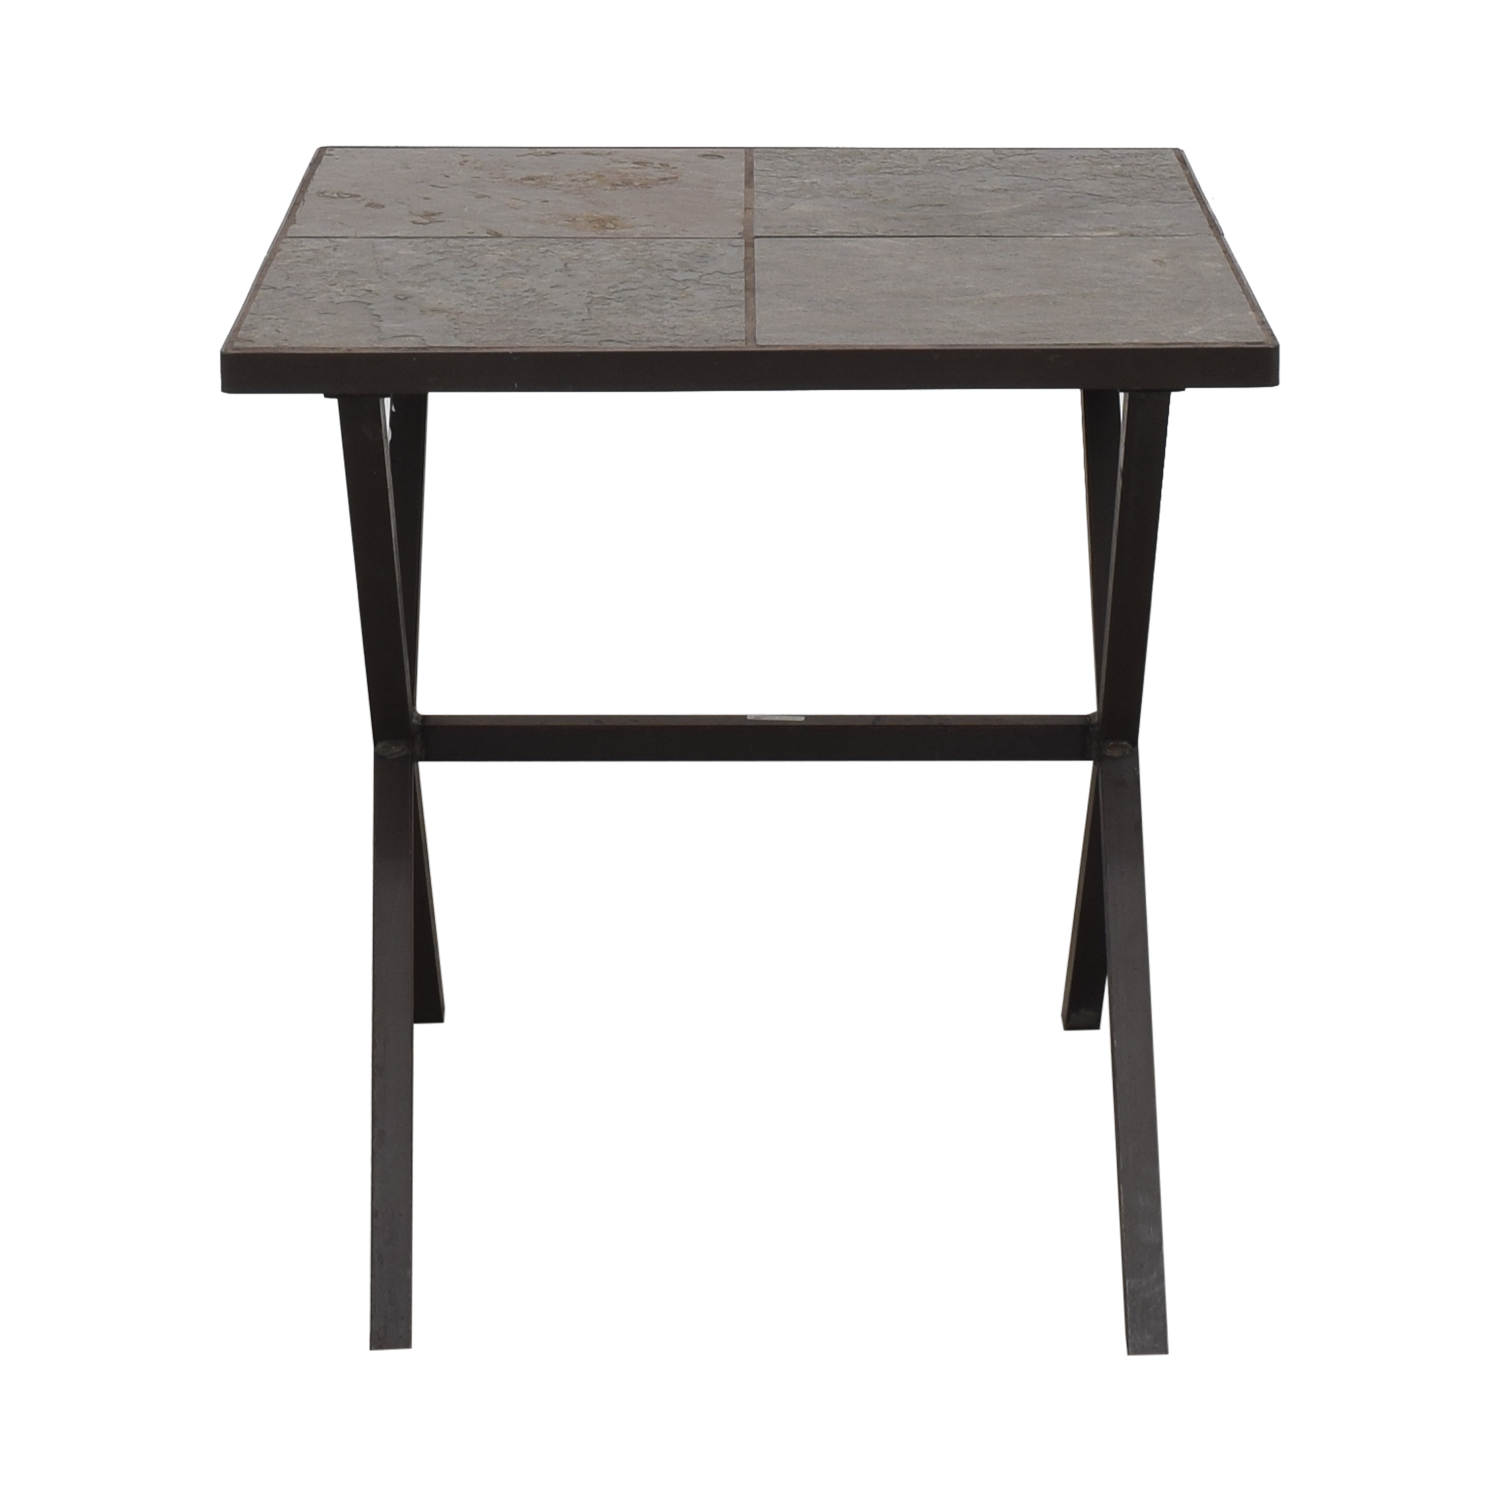 Charleston Forge Charleston Forge Tiled Side Table for sale